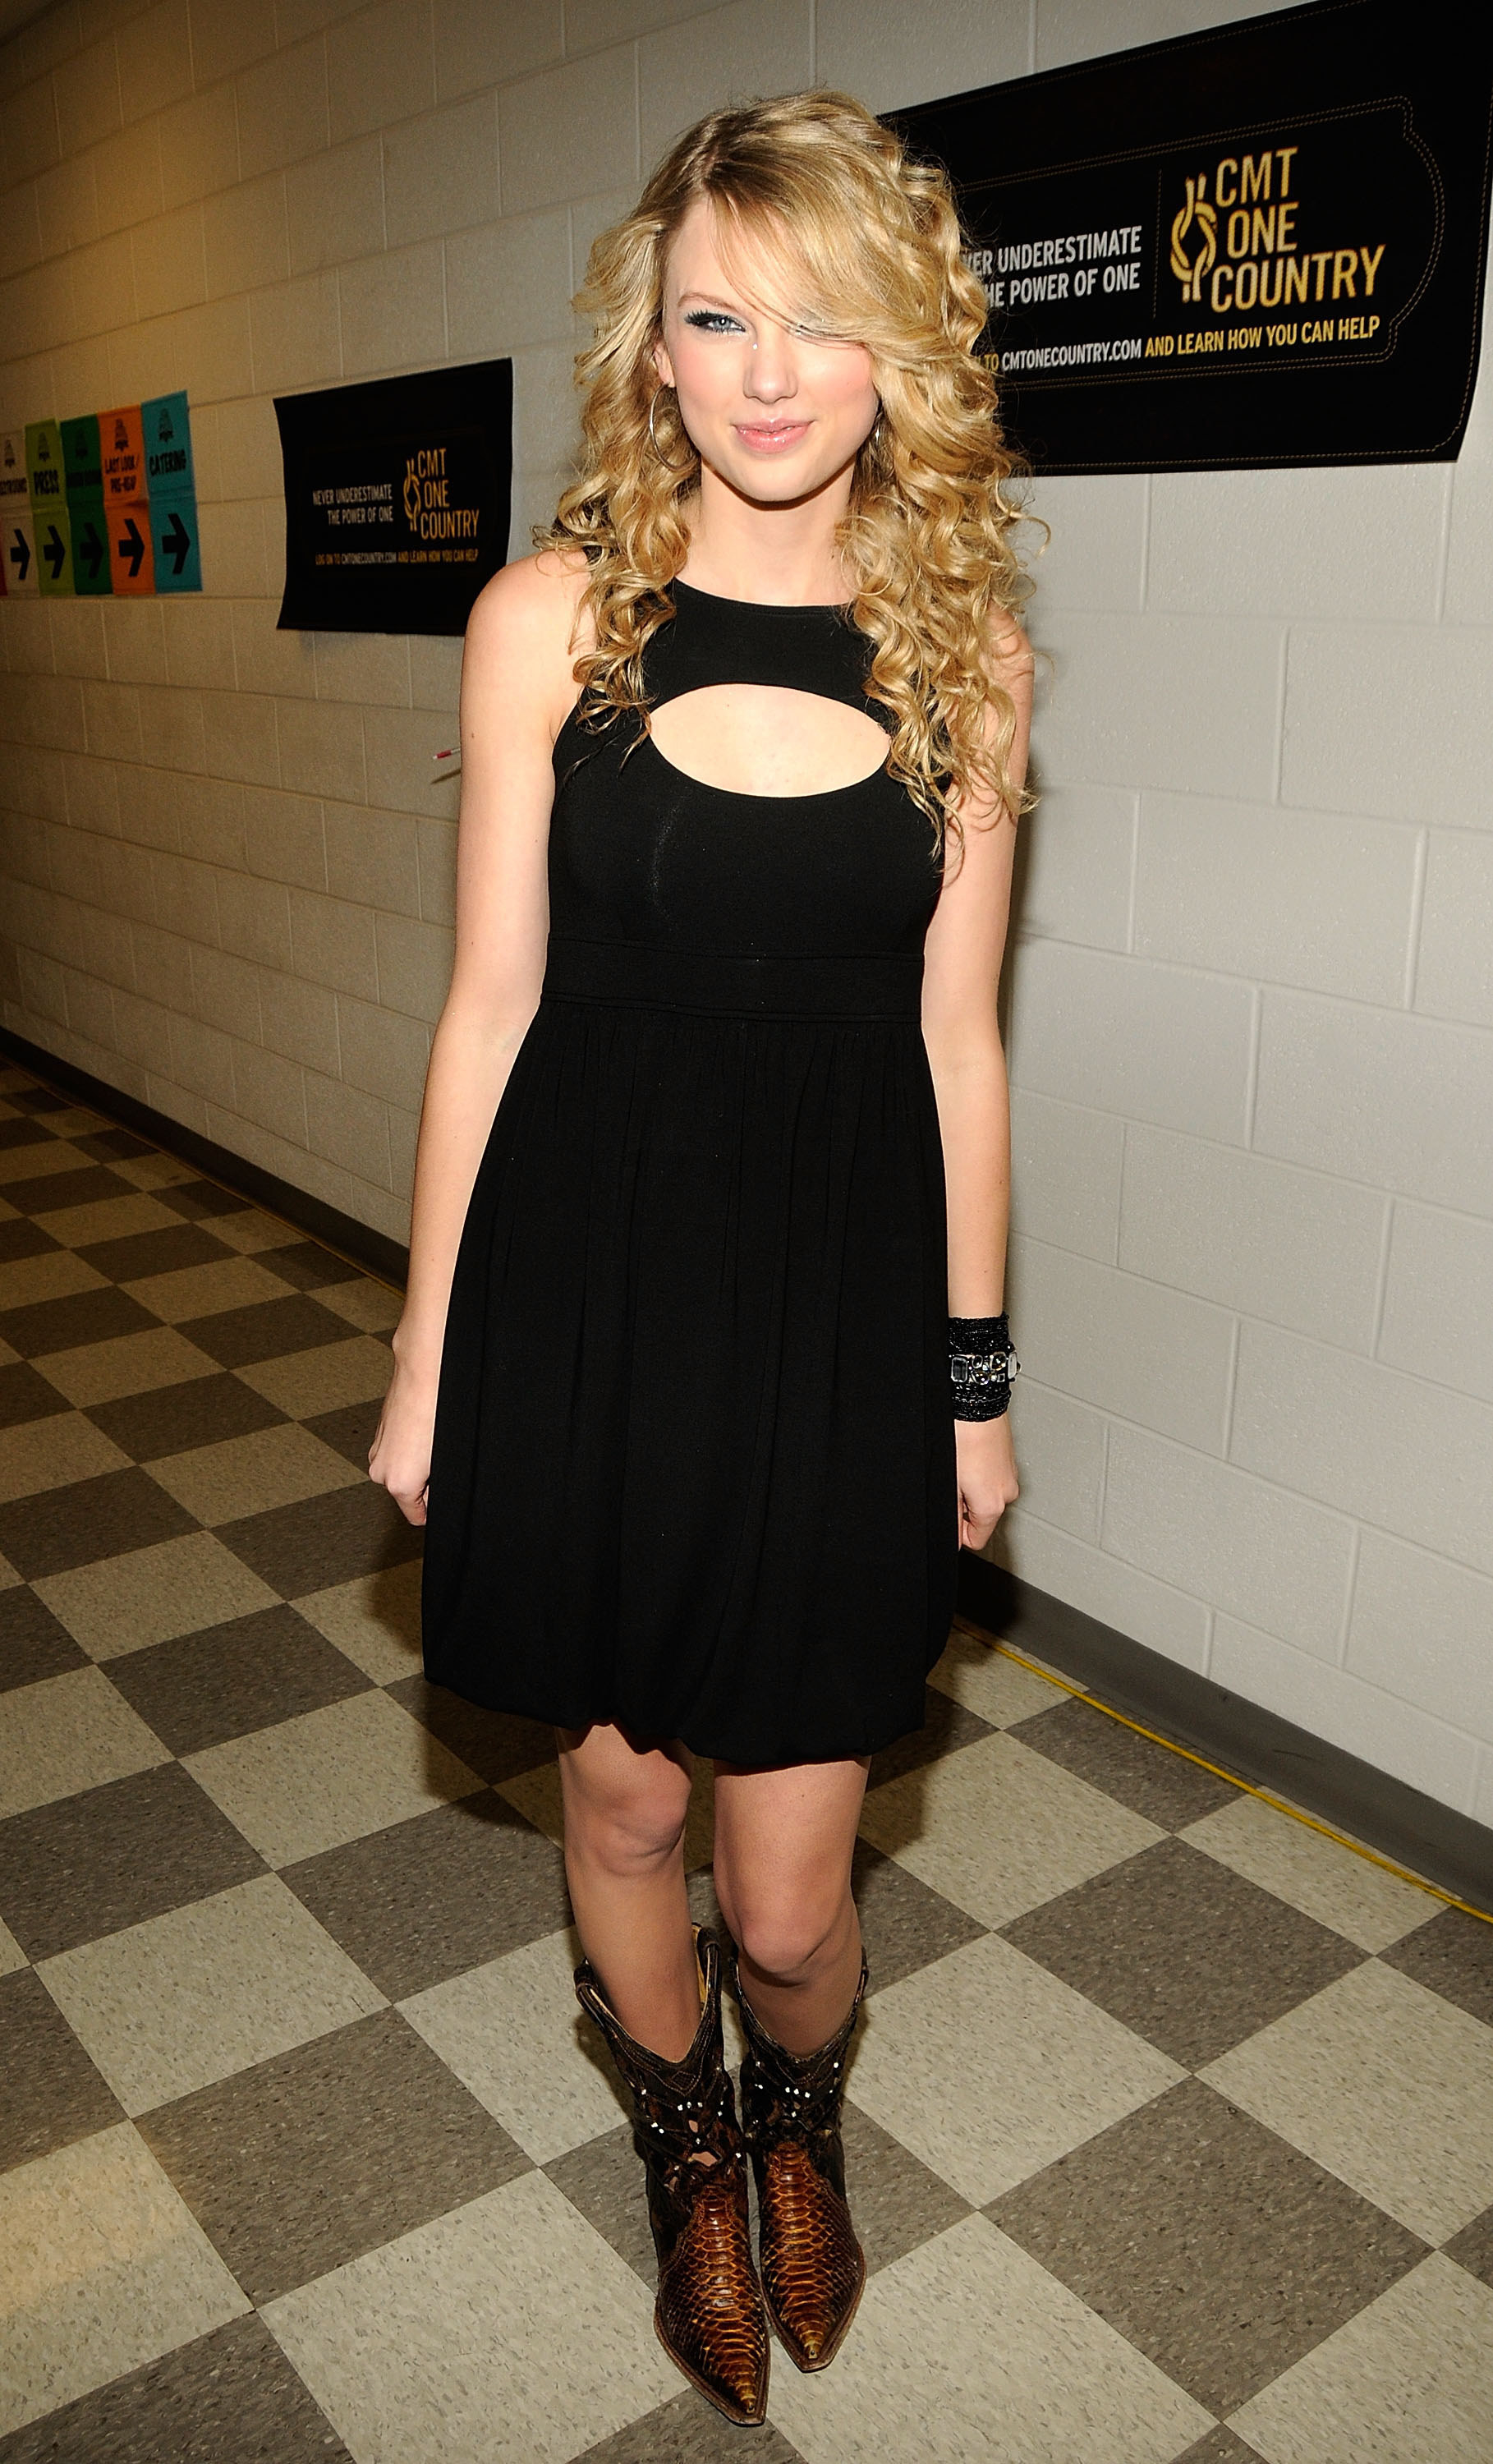 Taylor Swift posing backstage at the CMT Awards